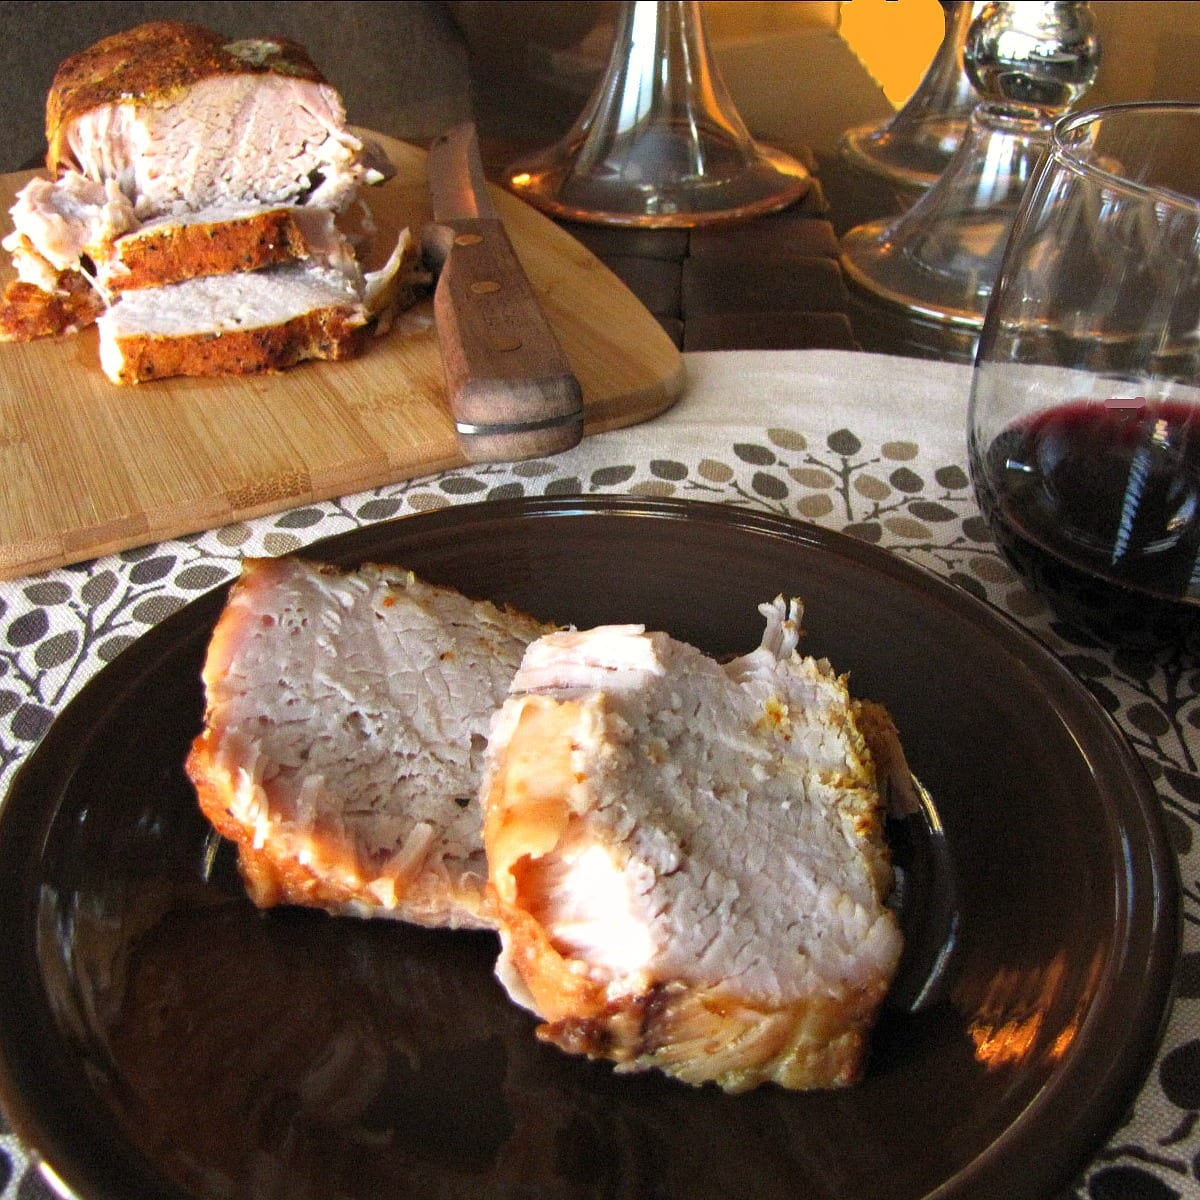 Two sliced pieces of Sweet and Spicy Pork Roast on a brown plate with a glass of red wine